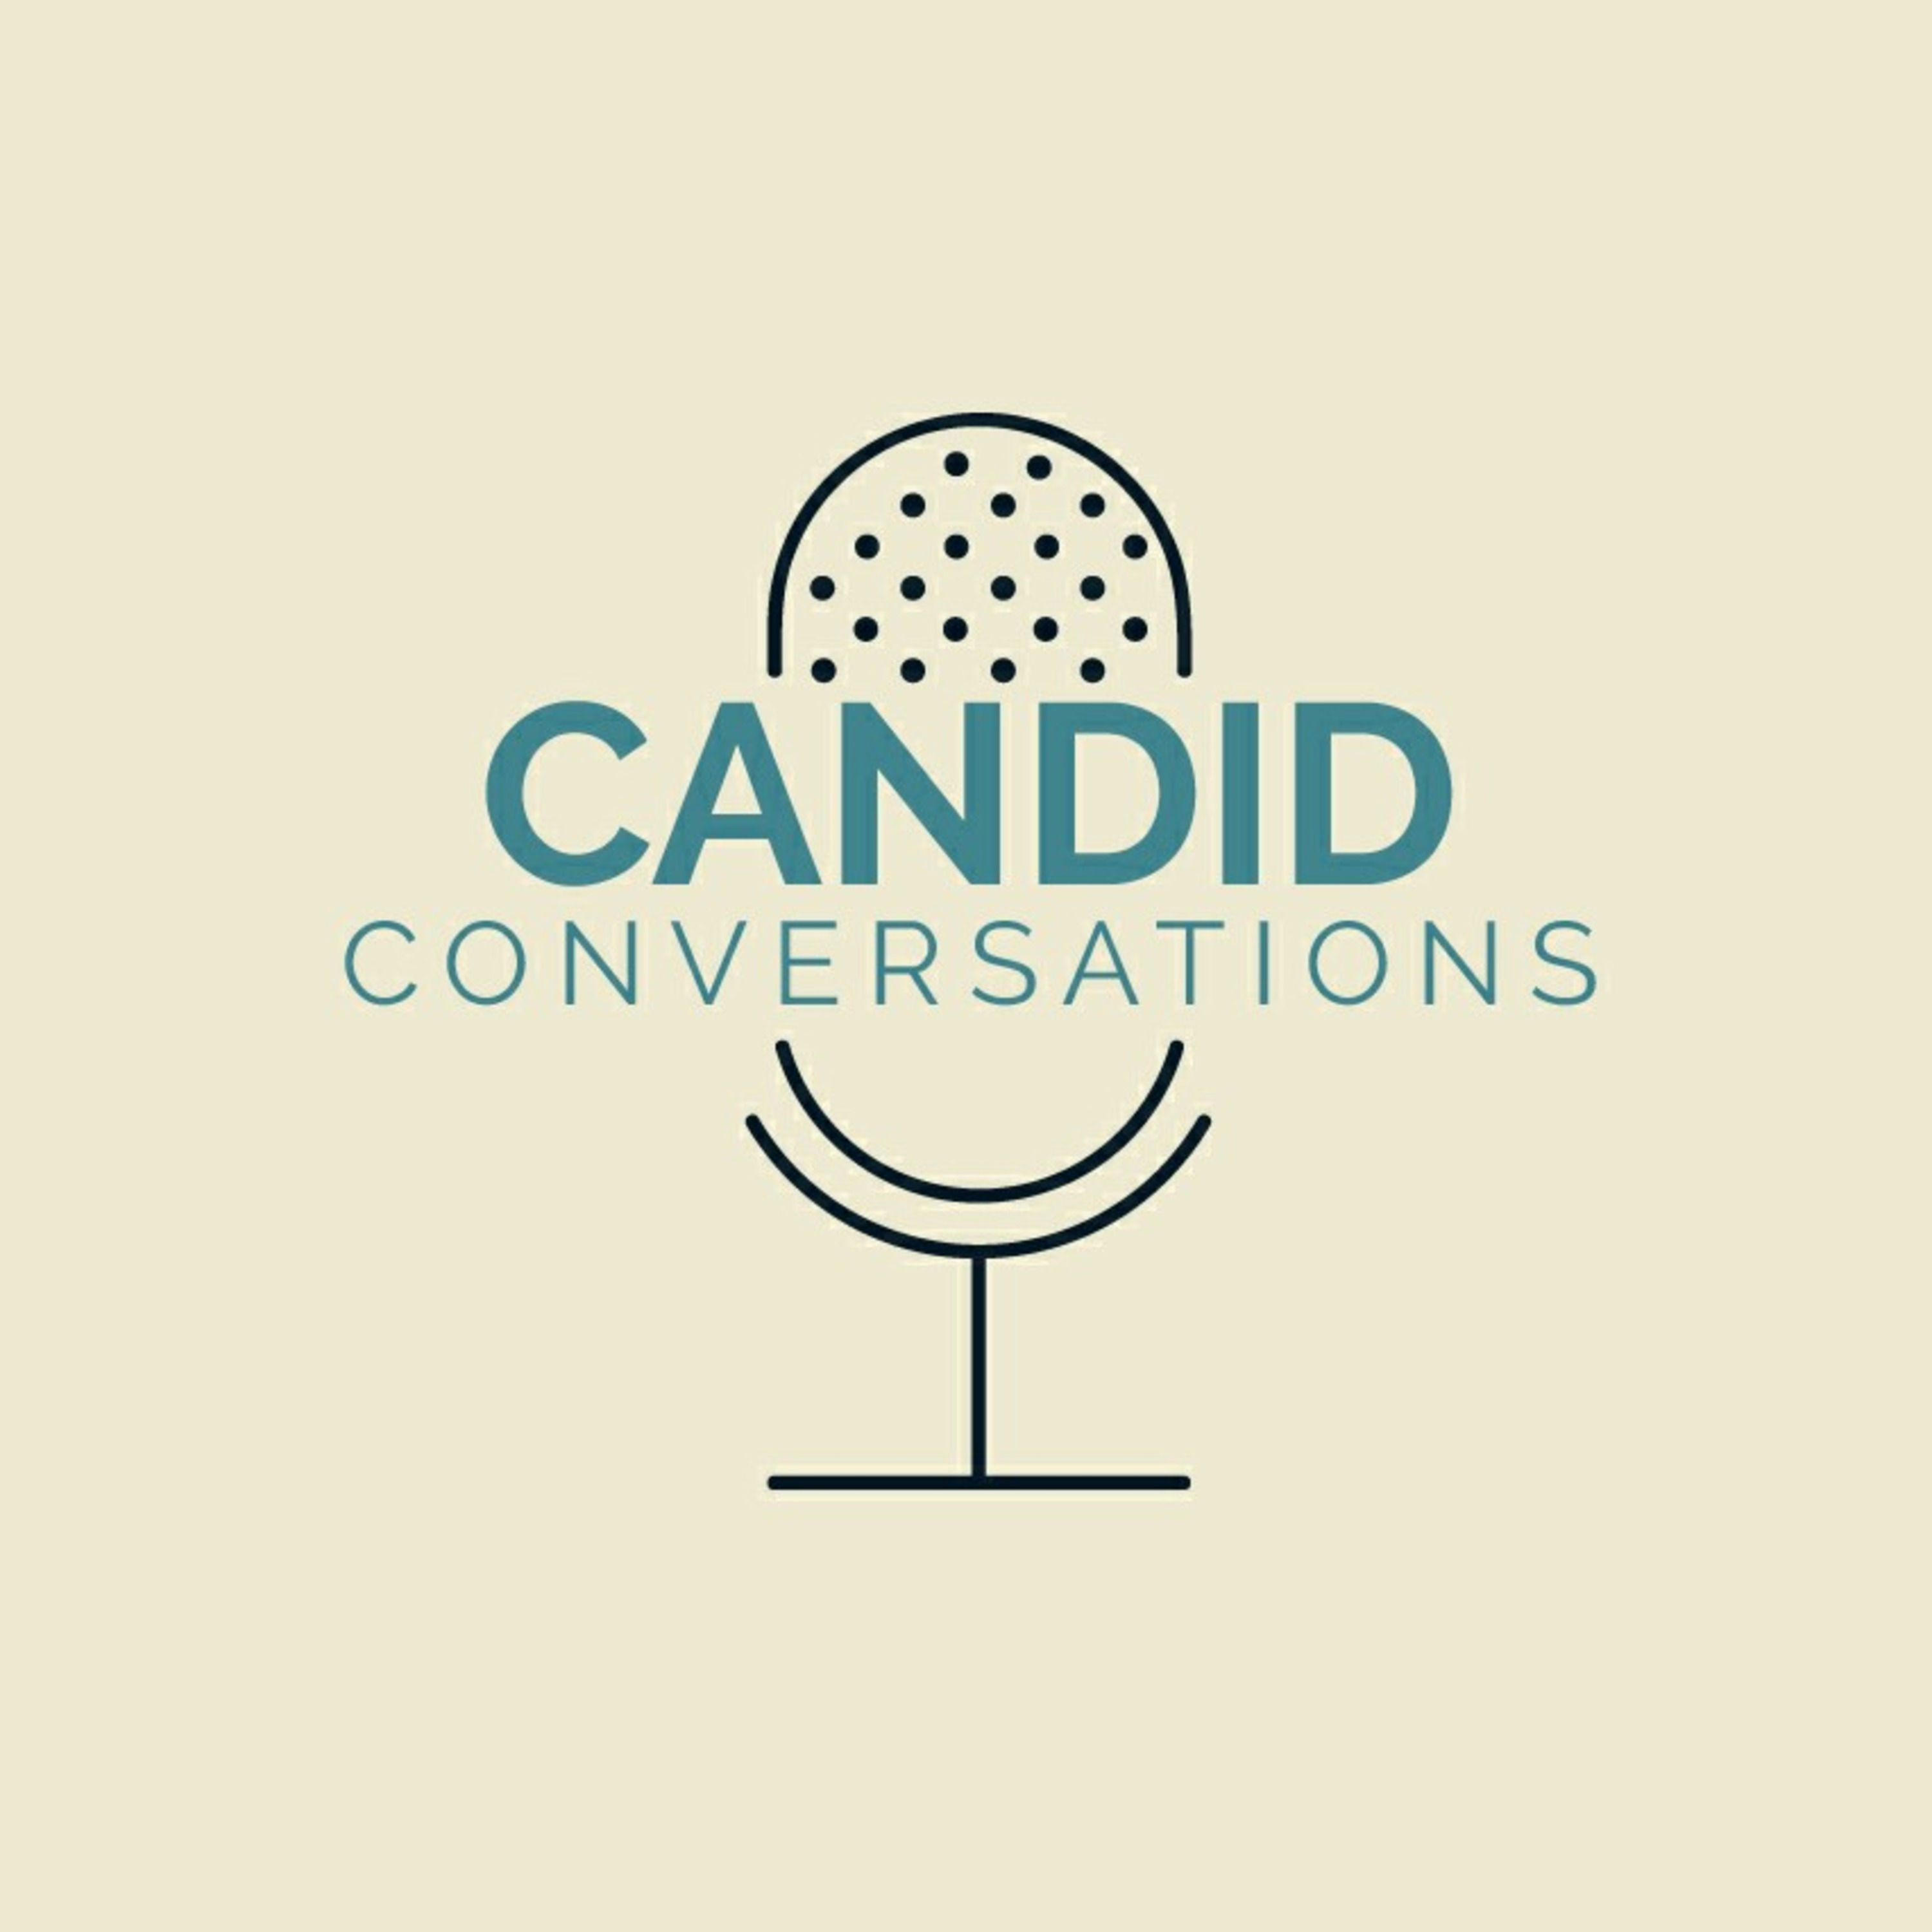 Candid Conversations on a macro perspective of love and relationships